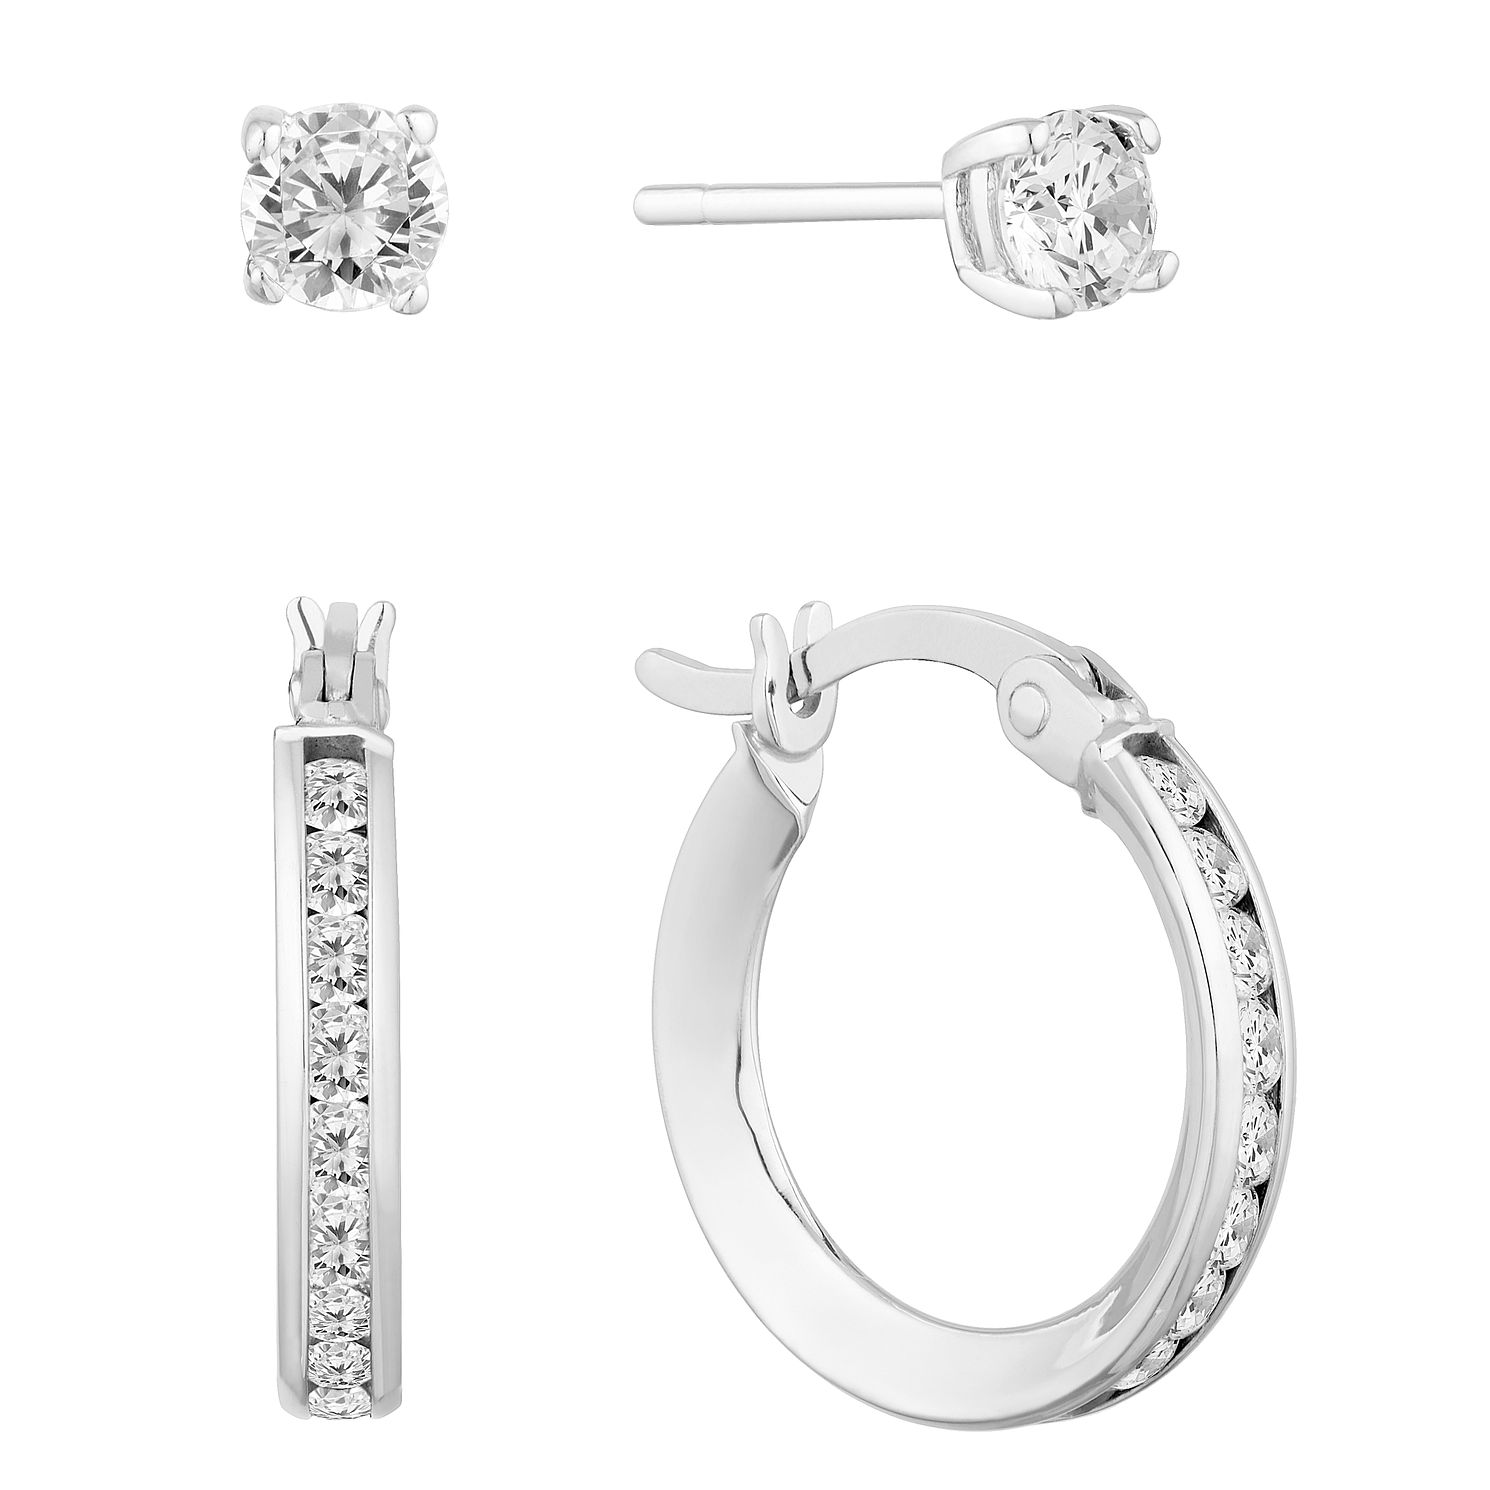 9ct White Gold Cubic Zirconia Hoop & Stud Earrings Set - Product number 9663282